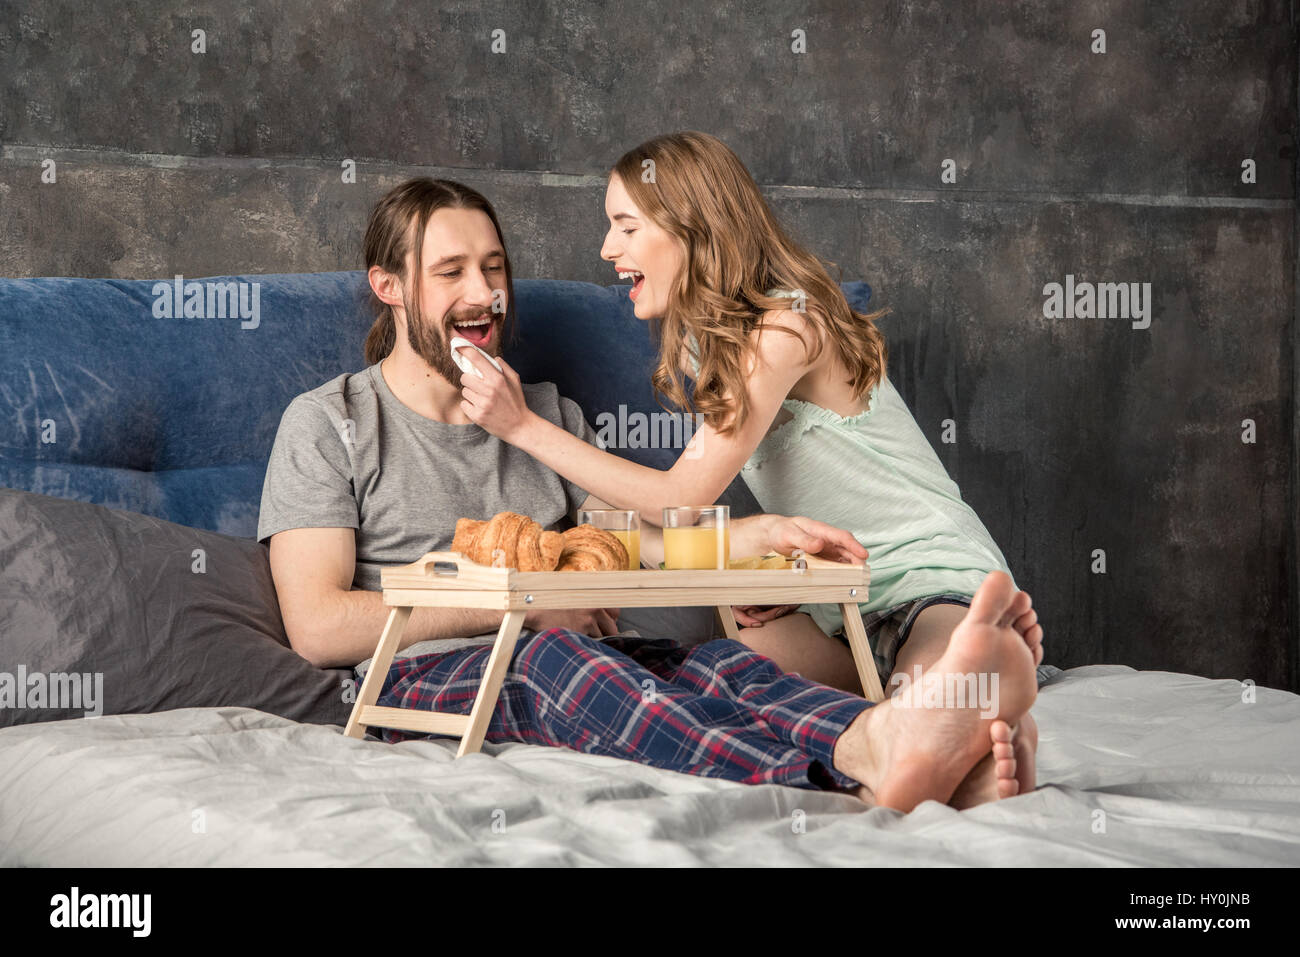 Young woman feeds her boyfriend with breakfast in bed - Stock Image